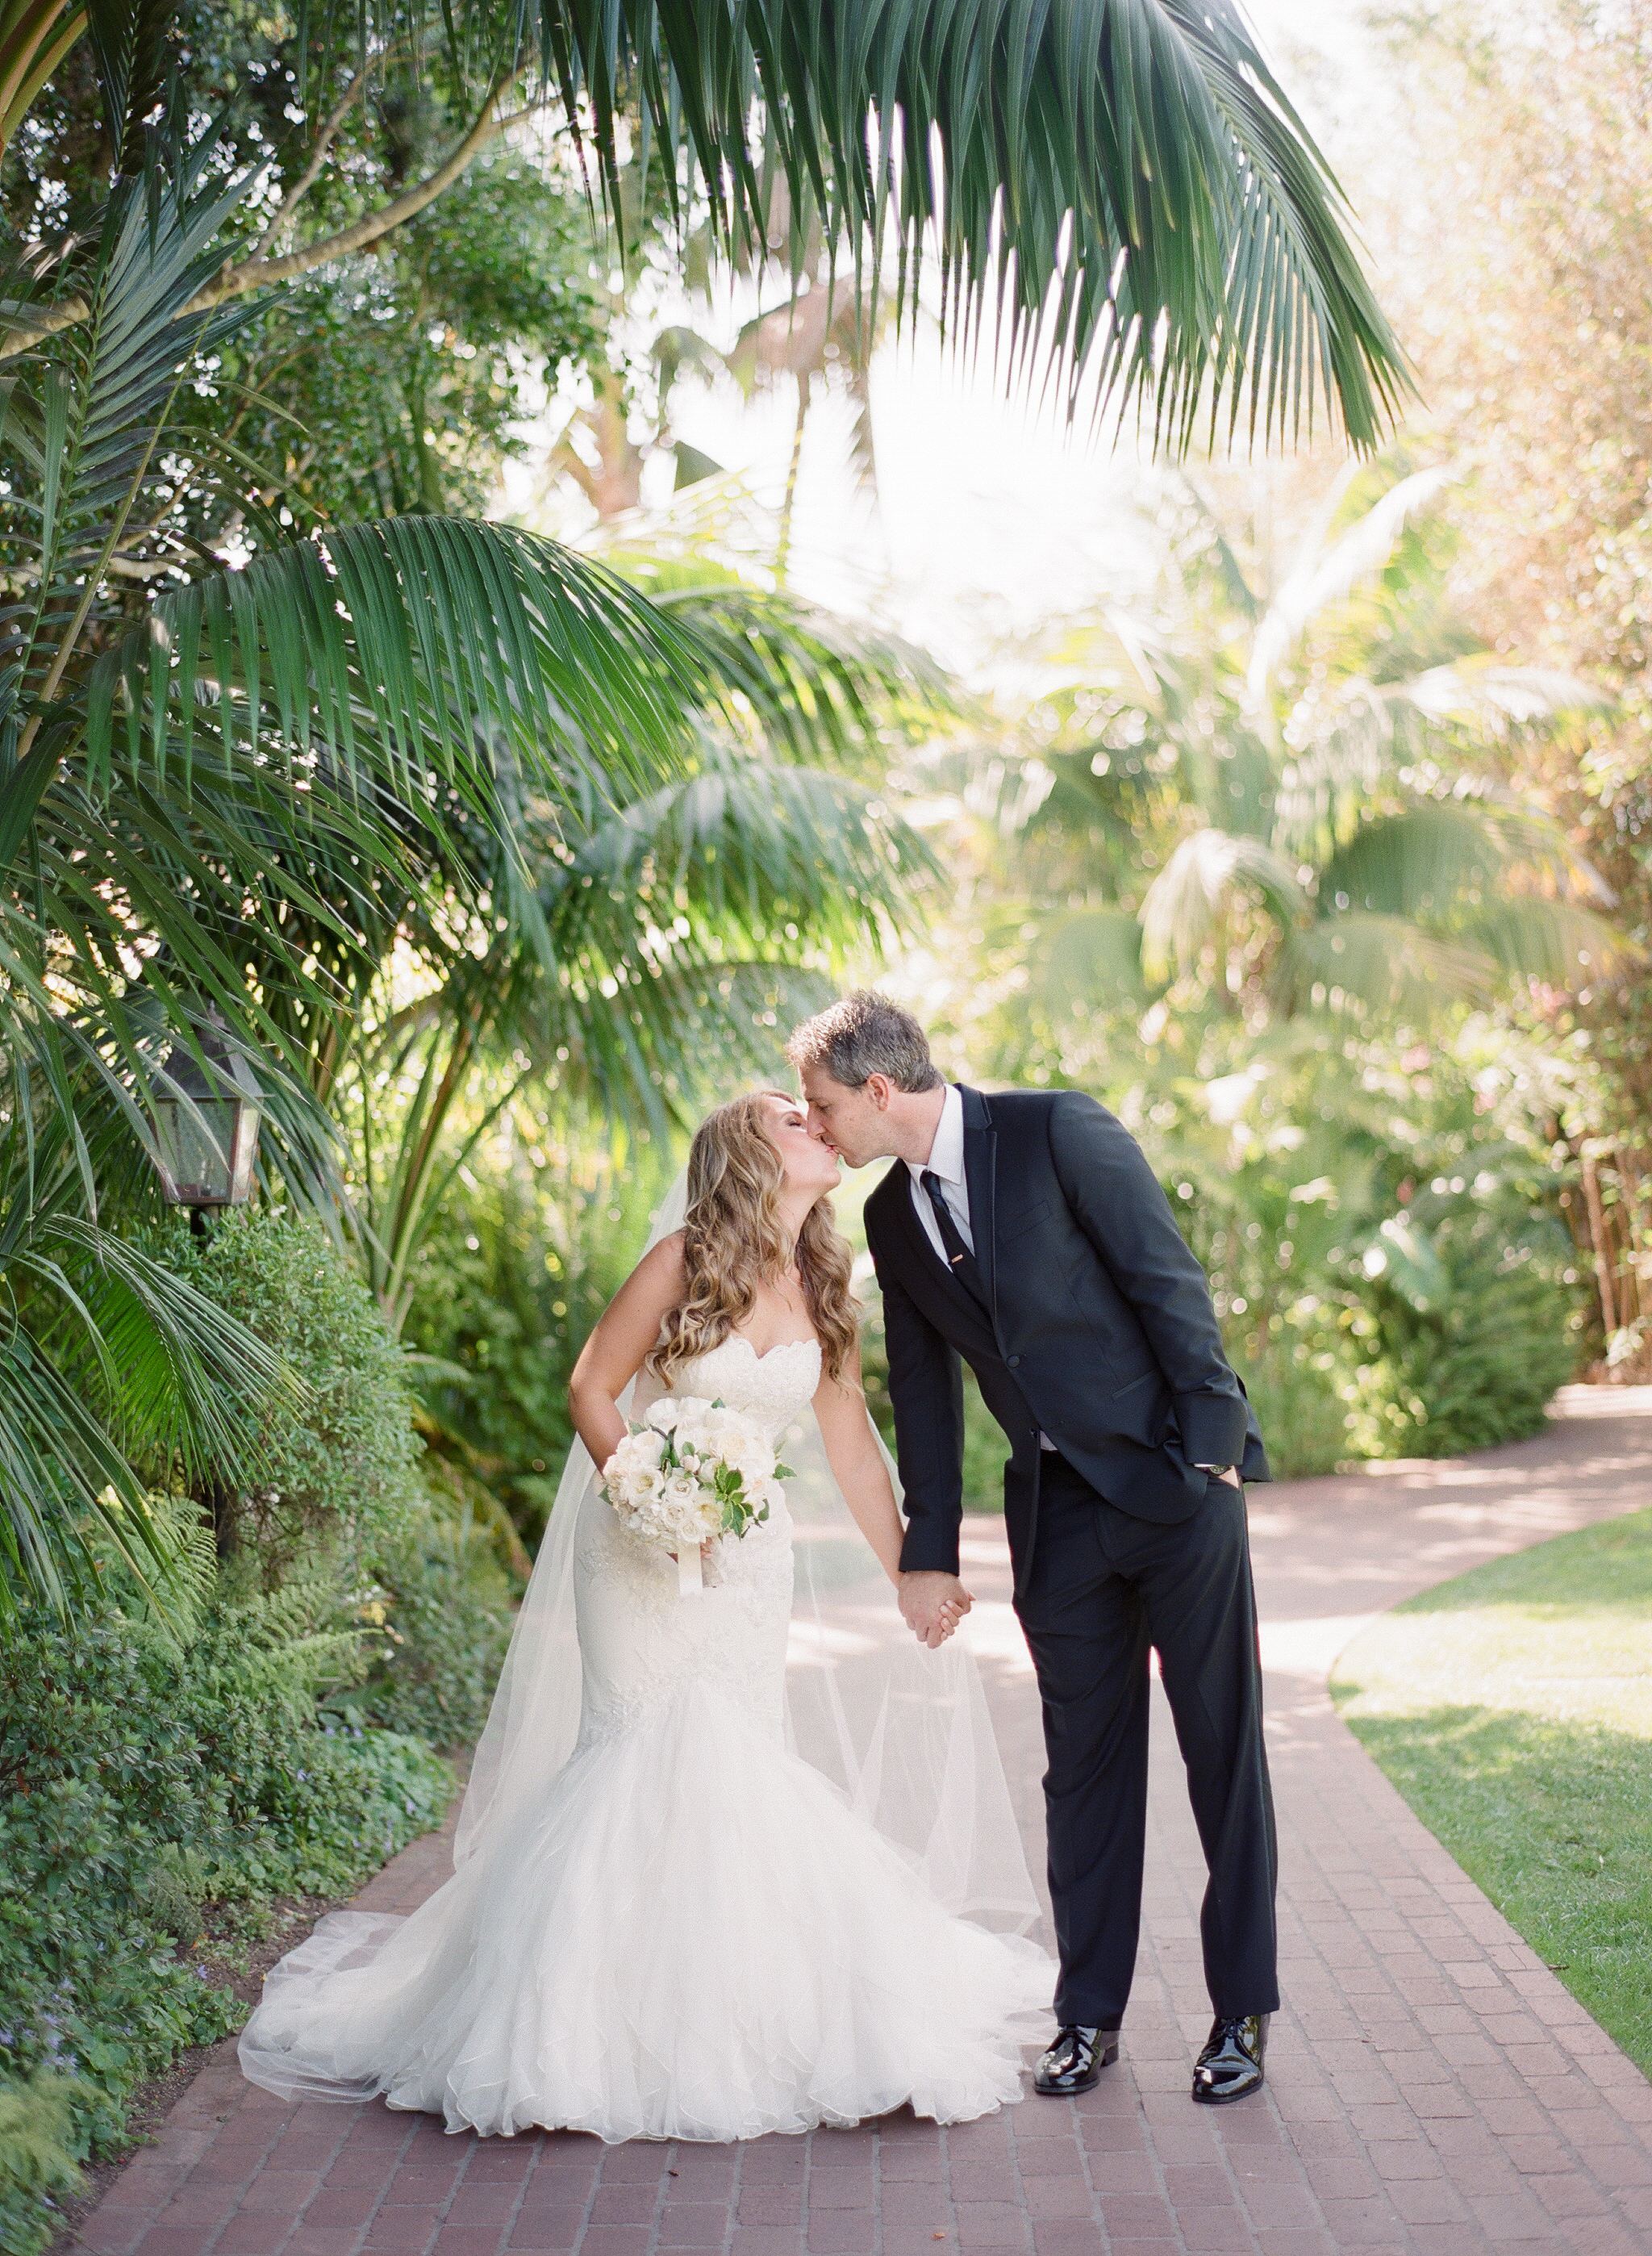 michellebeller.com | Four Seasons Biltmore Wedding | Michelle Beller Photography | Santa Barbara Wedding Photographer